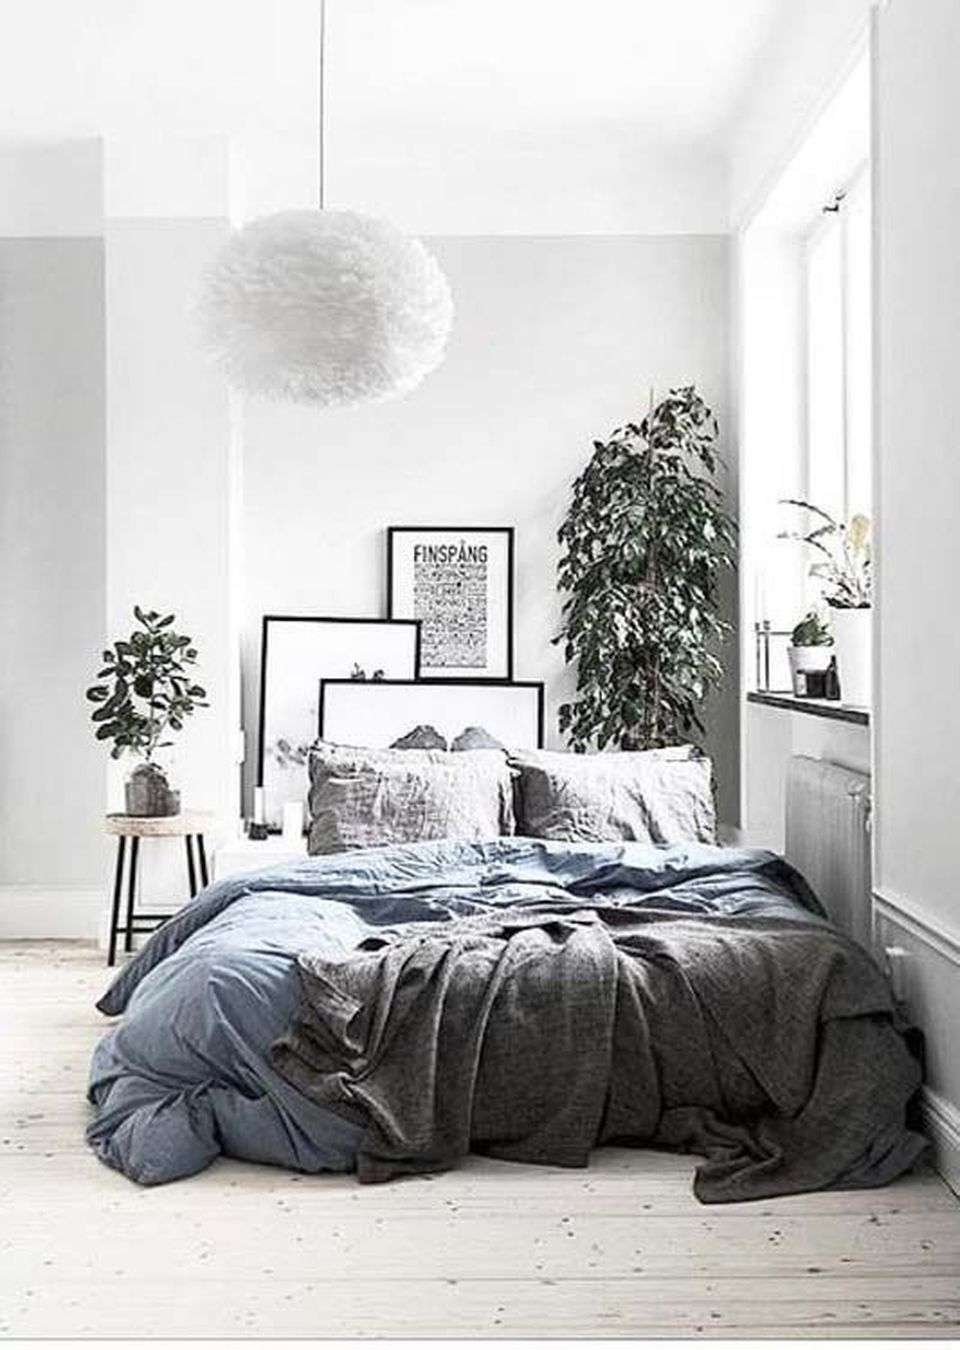 Fantastic Urban Home Interior Decor Ideas Hoommy Com Bedroom Interior Home Decor Bedroom Urban Bedroom